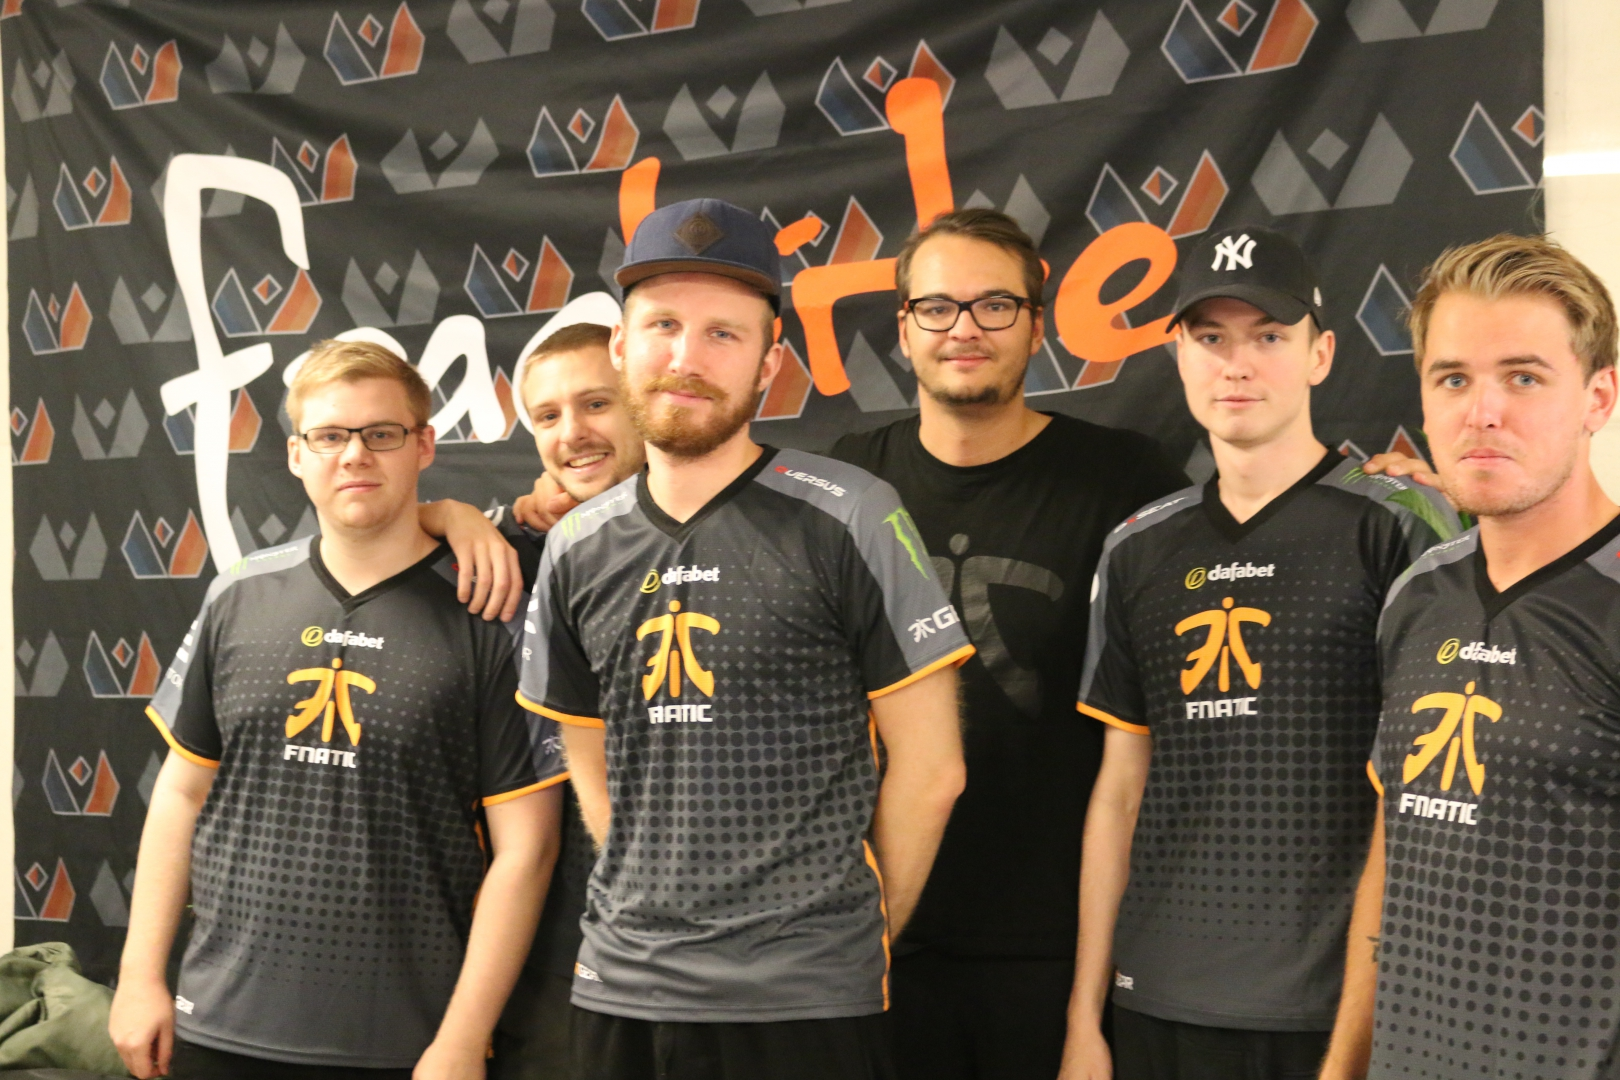 Six out of the seven Fnatic players at the bootcamp.